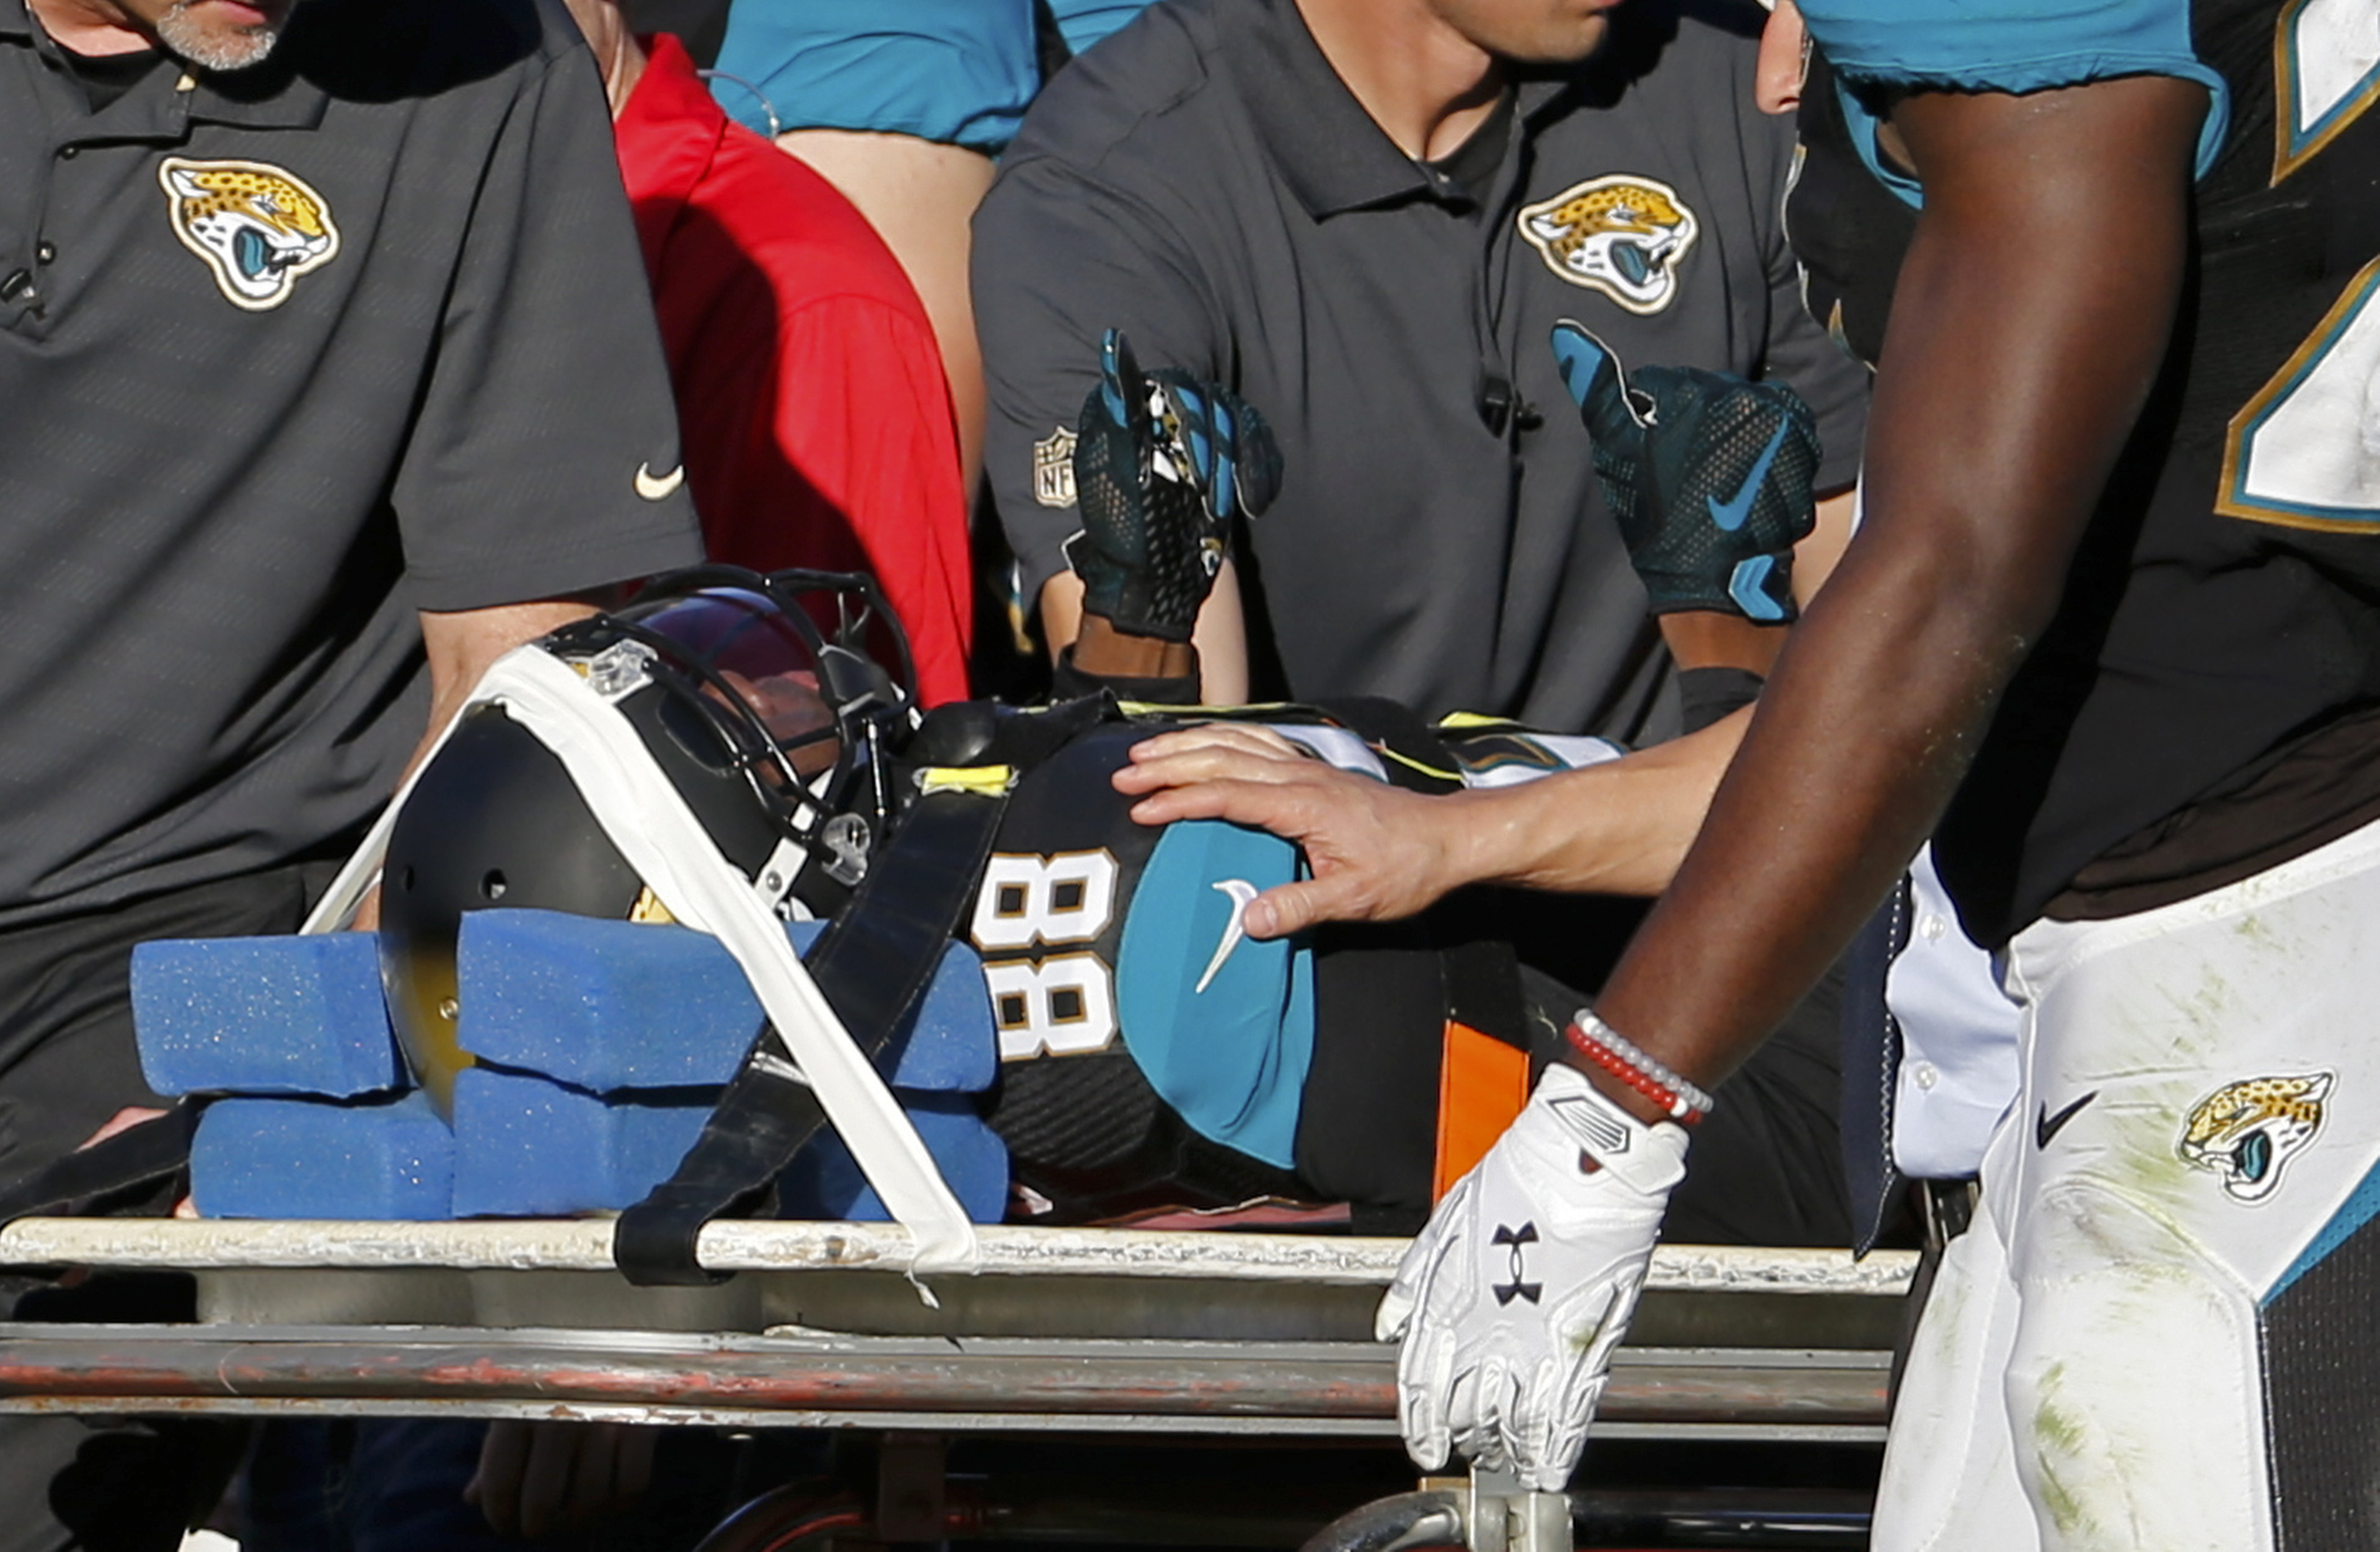 Jacksonville Jaguars wide receiver Allen Hurns (88) gives the thumbs up as he comes off the field after he was injured during the second half of an NFL football game against the San Diego Chargers in Jacksonville, Fla., Sunday, Nov. 29, 2015. San Diego wo